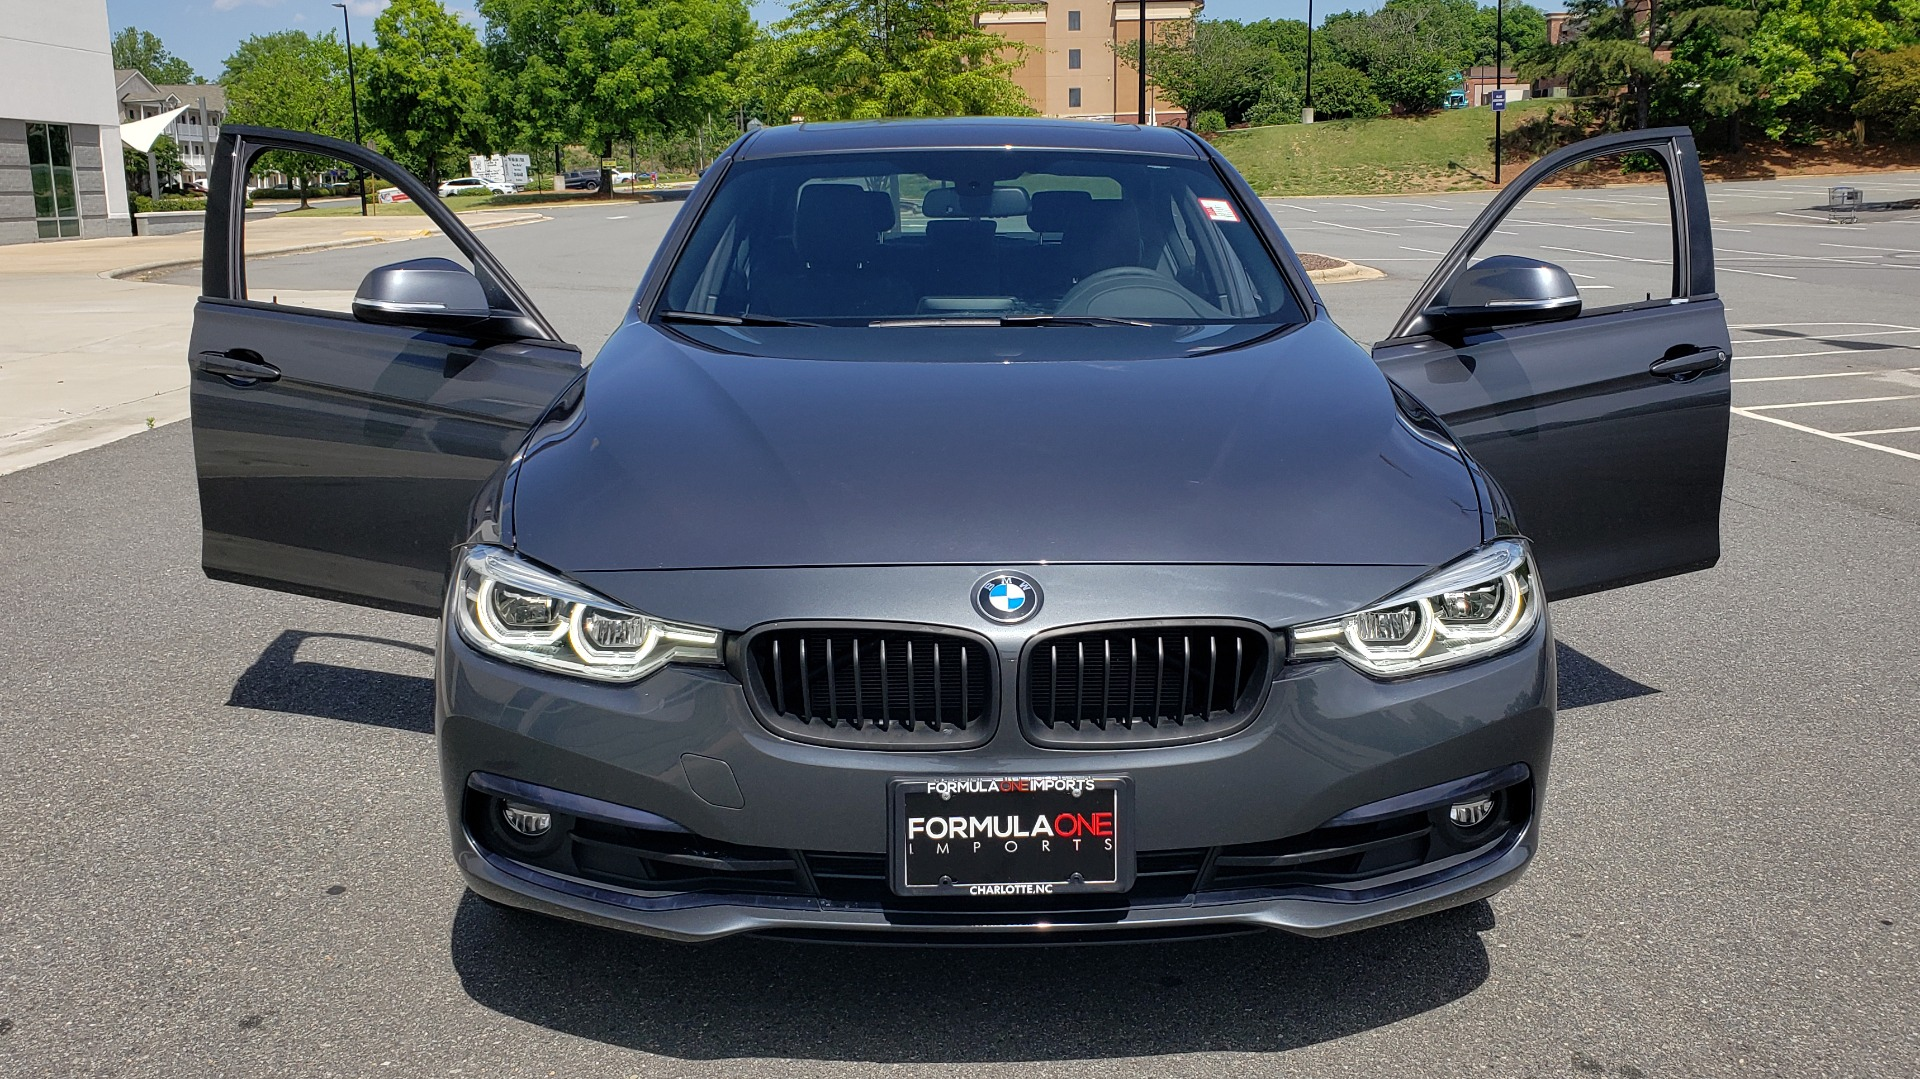 Used 2018 BMW 3 SERIES 330I XDRIVE / CONV PKG / SUNROOF / SPORT STS / HTD STS / REARVIEW for sale $28,495 at Formula Imports in Charlotte NC 28227 19